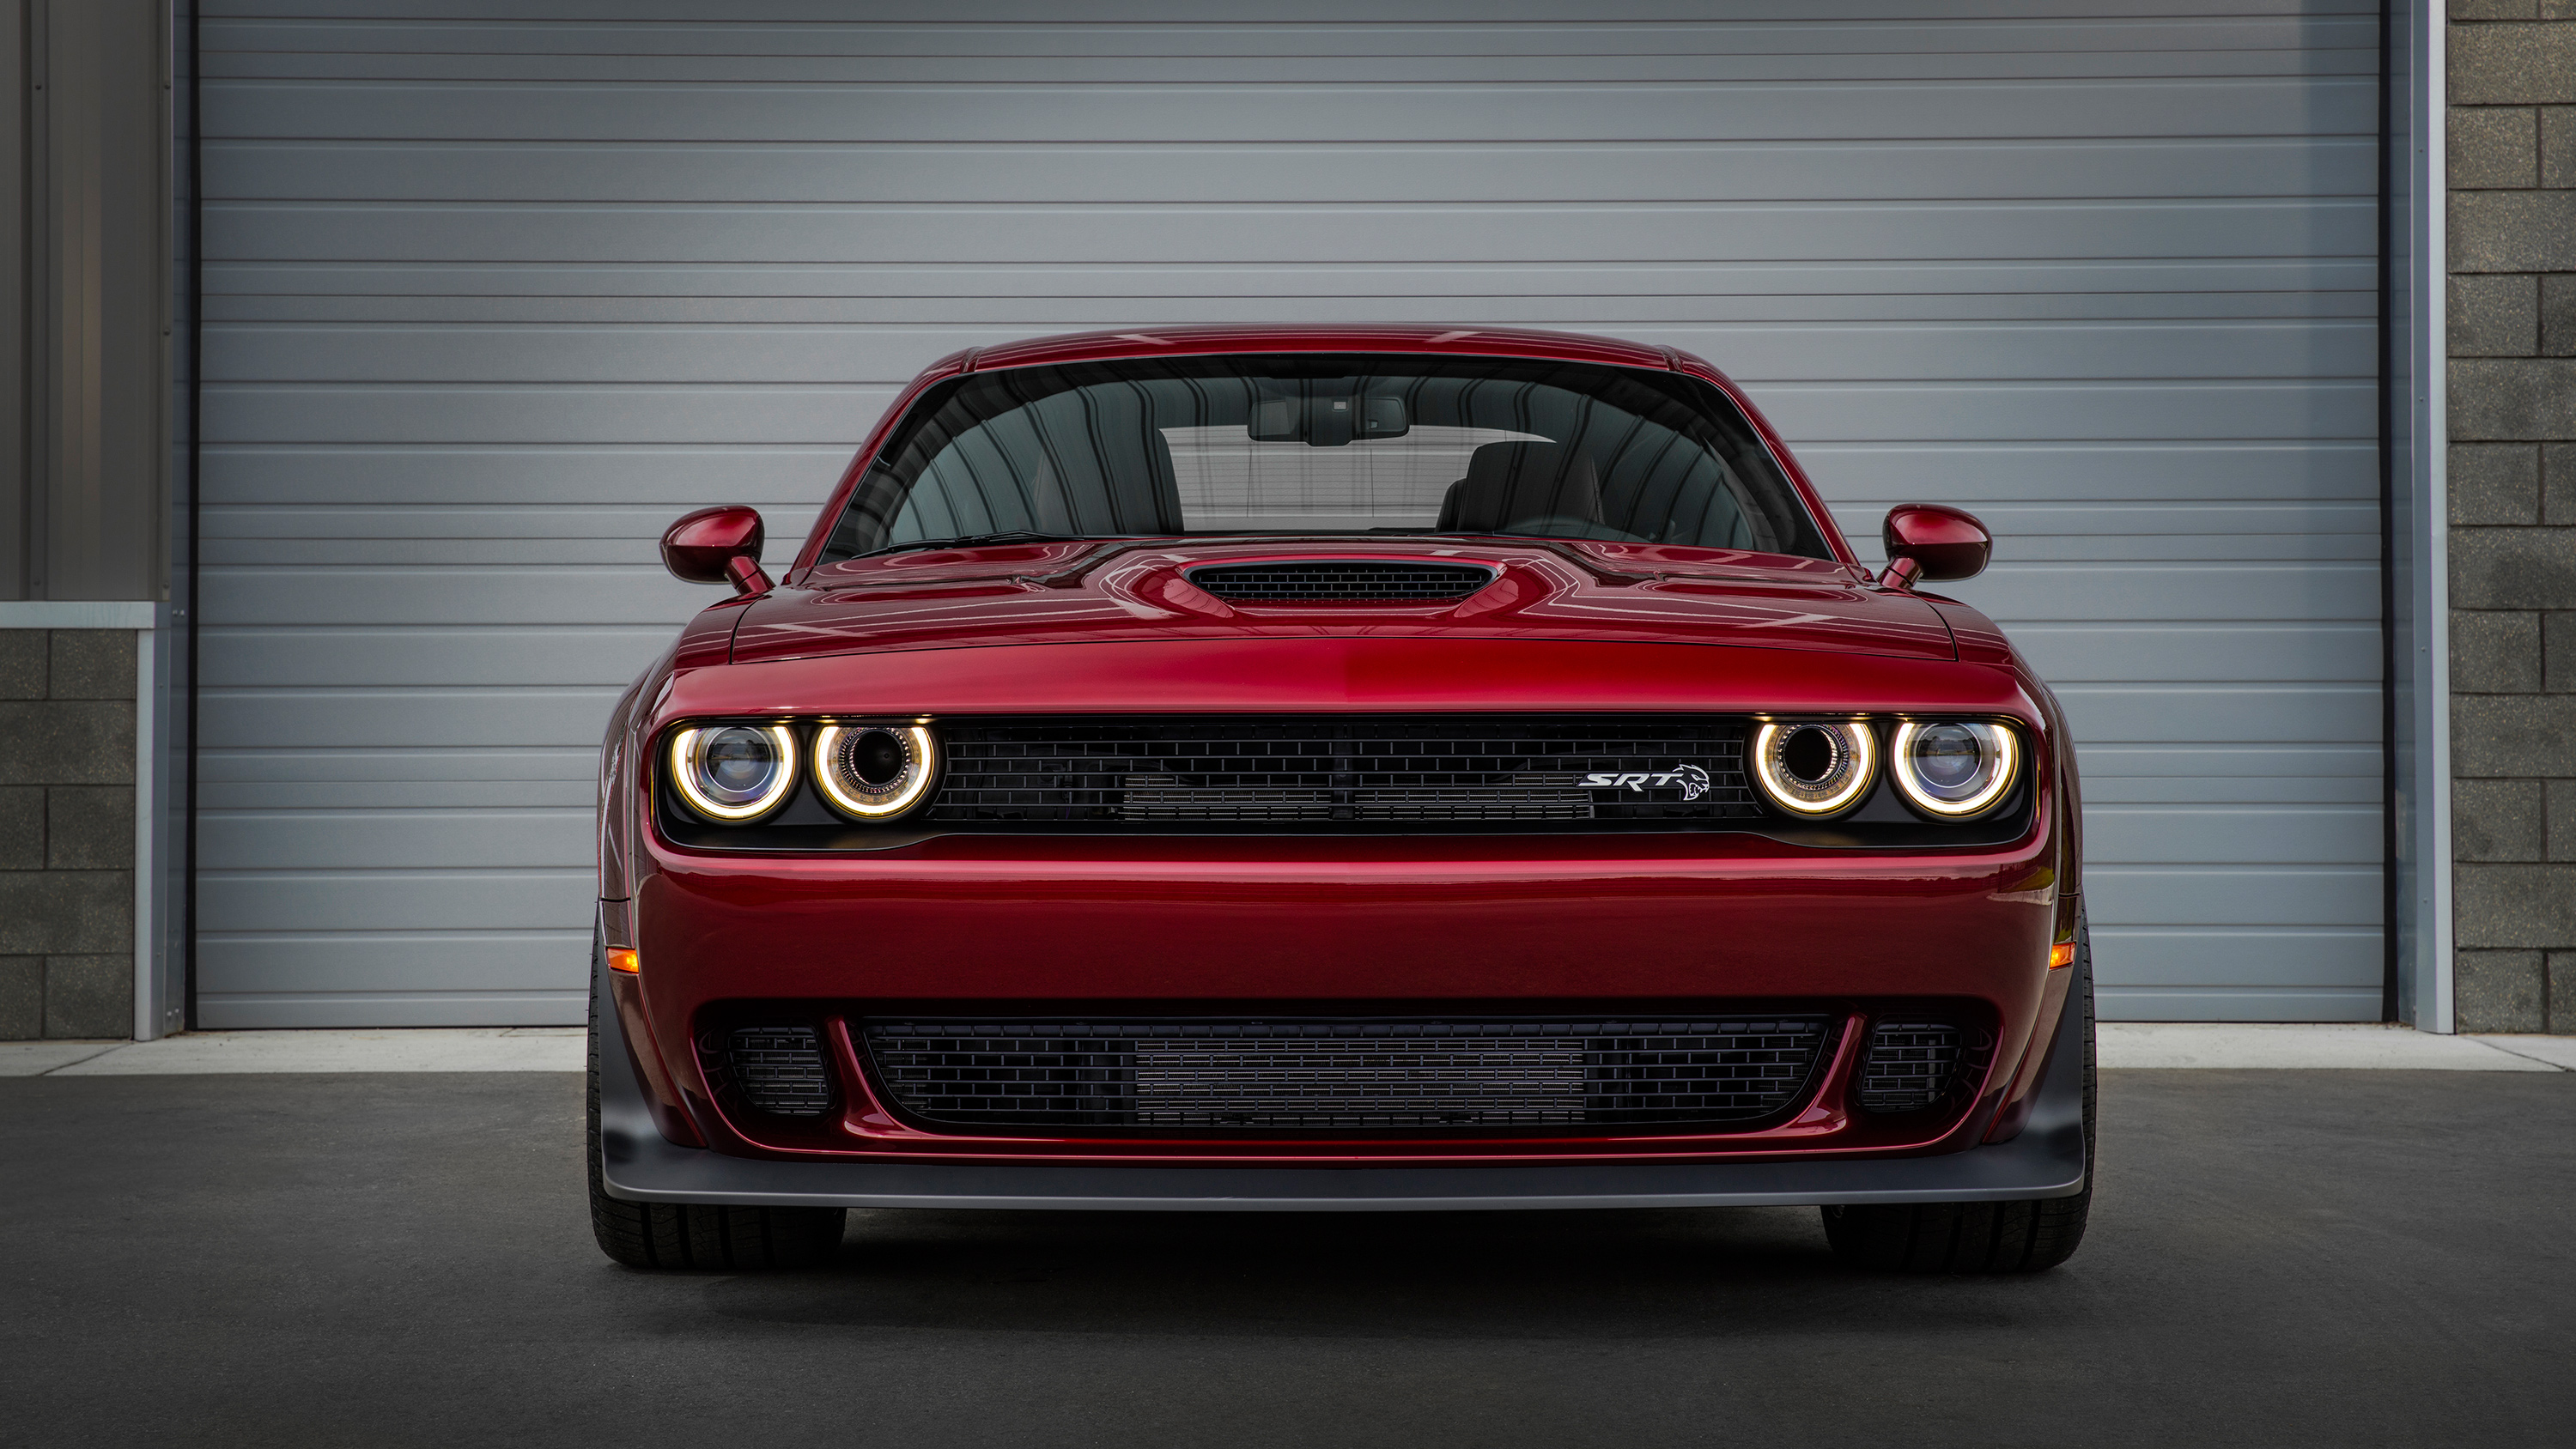 2018 dodge challenger srt hellcat widebody 5 wallpaper | hd car